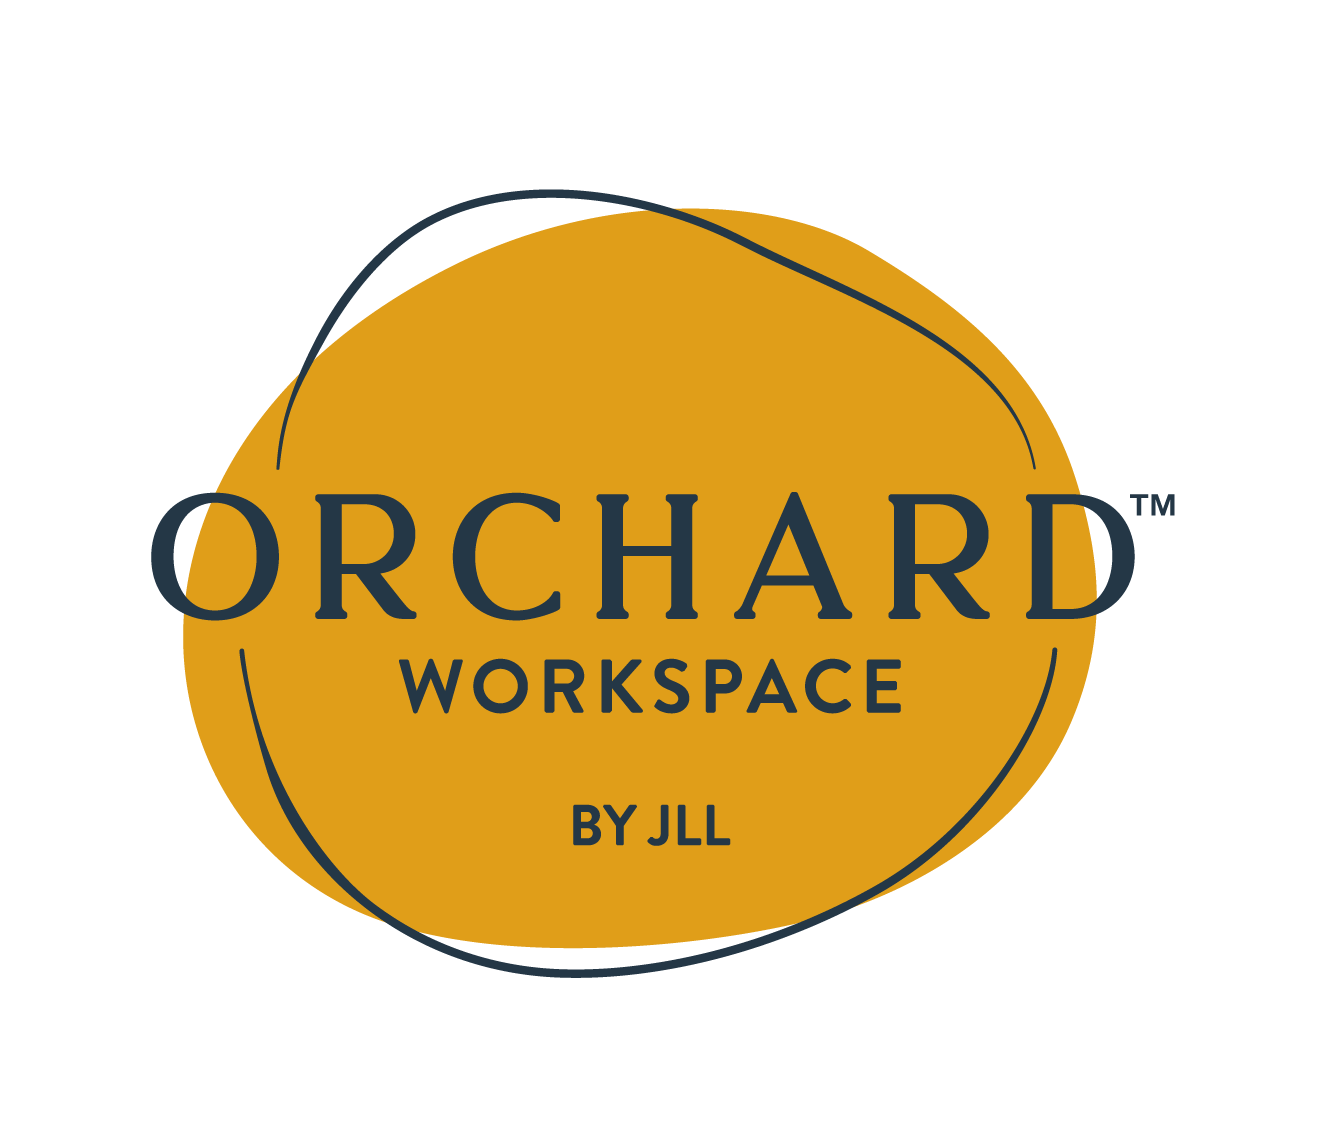 Orchard Workspace by JLL